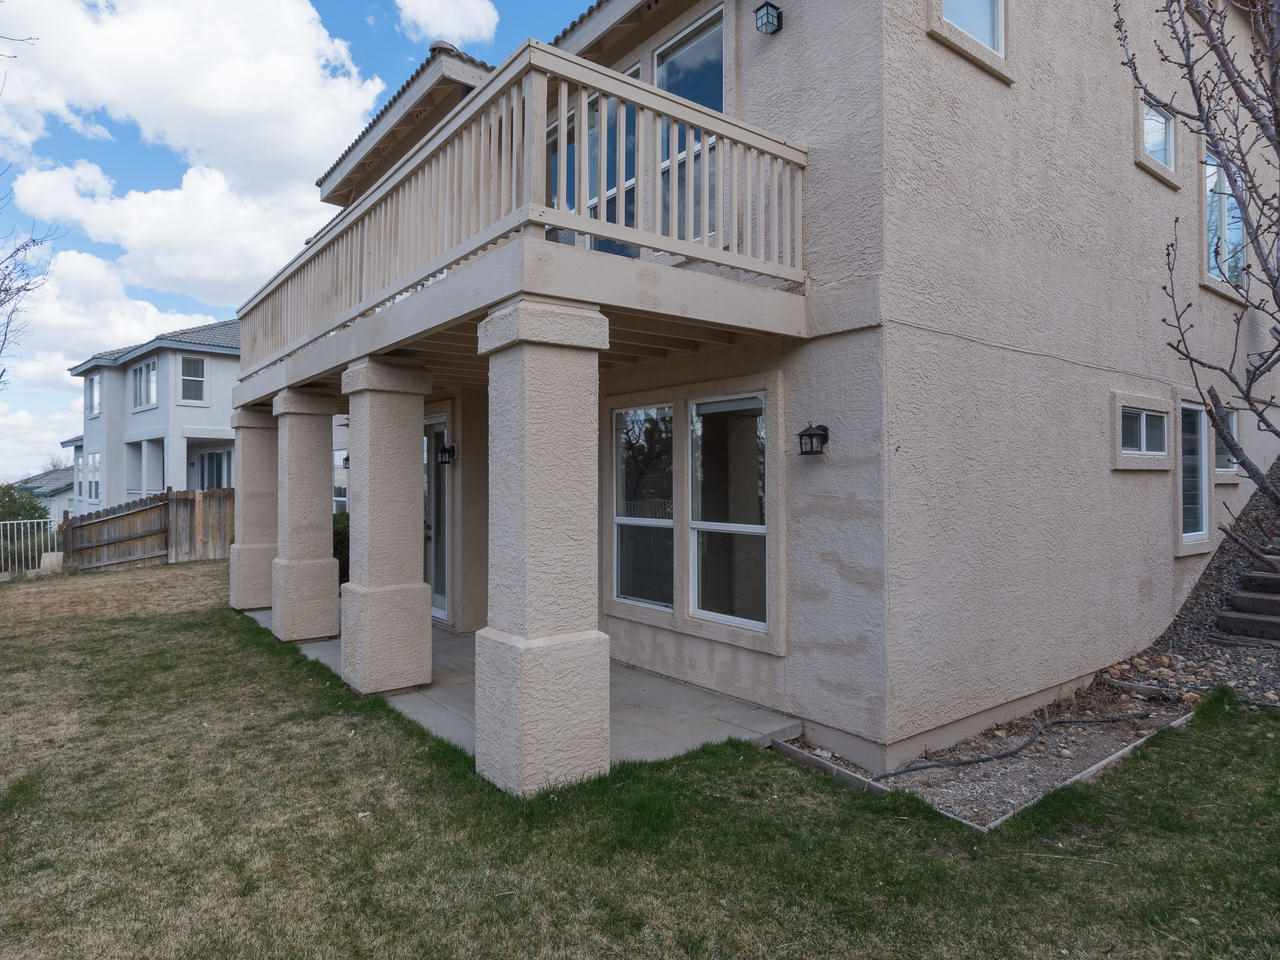 Additional photo for property listing at 4943 Foxcreek Trail Reno, Nevada 89519 United States